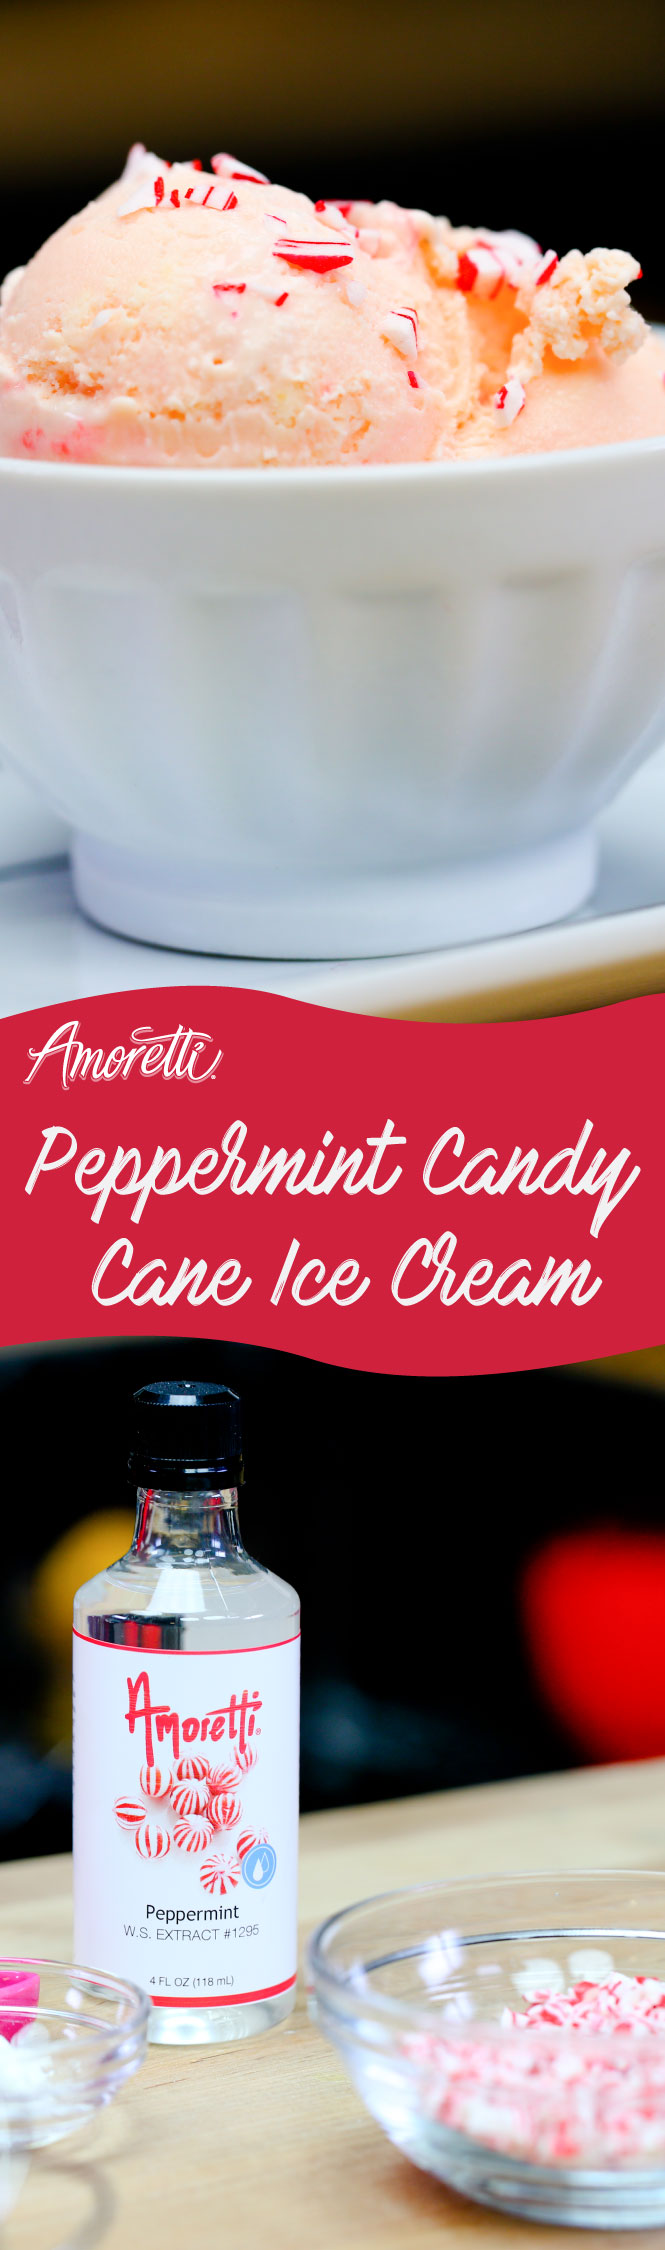 We have combined our favorite holiday candy with ice cream to make a delicious frozen treat!